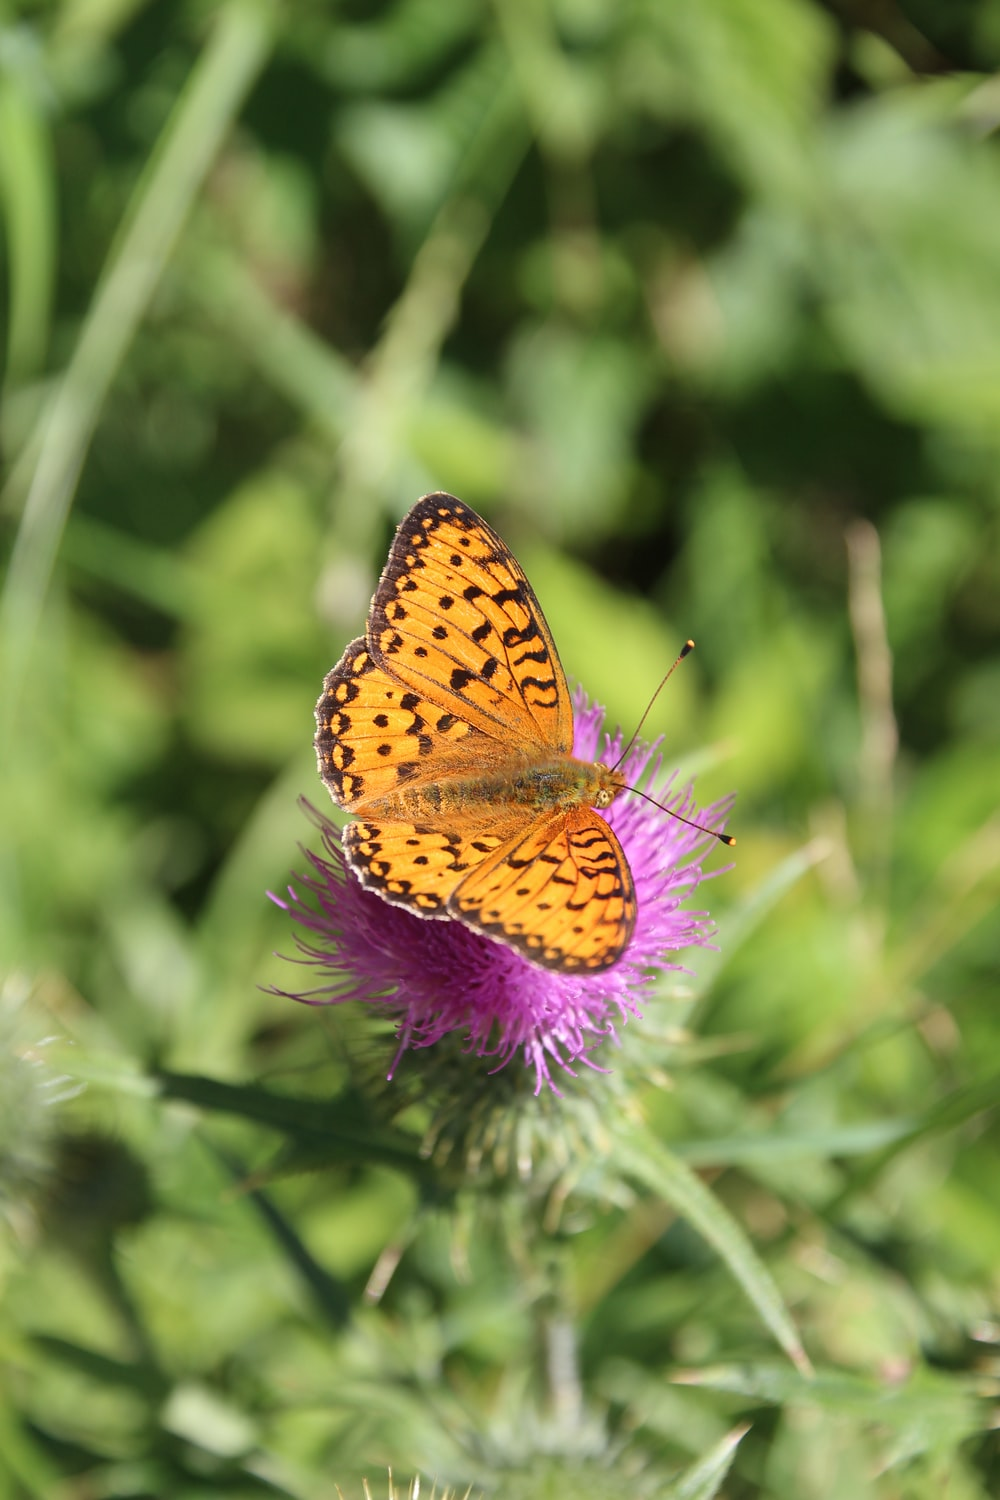 yellow and black butterfly on purple flower during daytime